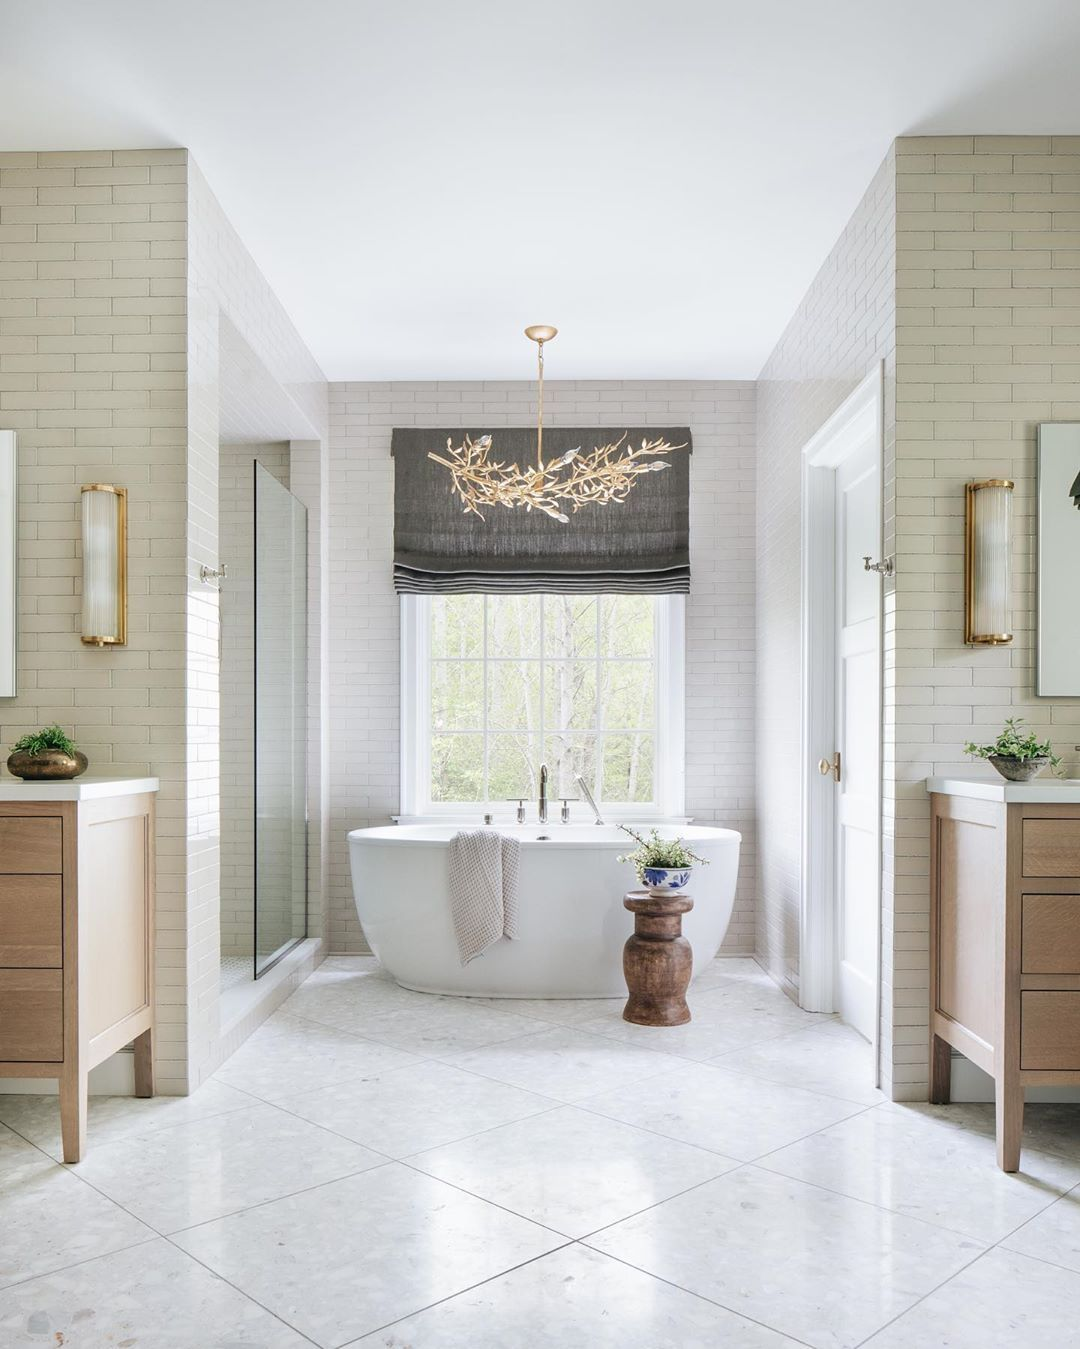 Jean Stoffer On Instagram I Am Having So Much Fun With These Before And Afters From Our Ada Project Chec Dream Bathrooms Classic Renovation Bathroom Layout